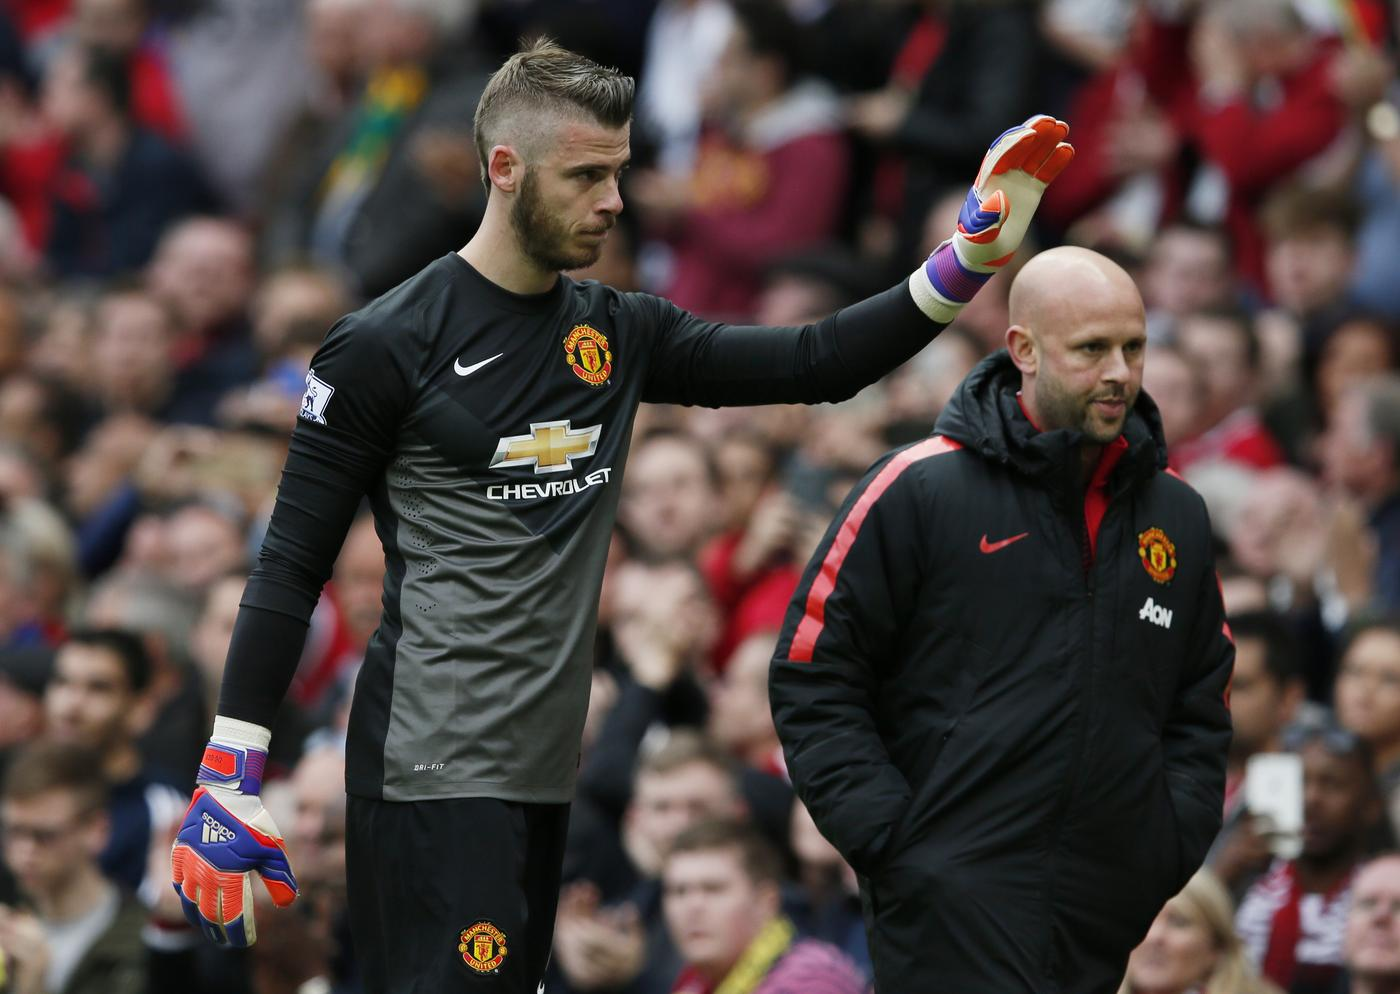 Football Manchester Uniteds David De Gea Waves To Fans As He Walks Down The Tunnel After Being Substituted After Sustaining An Injury